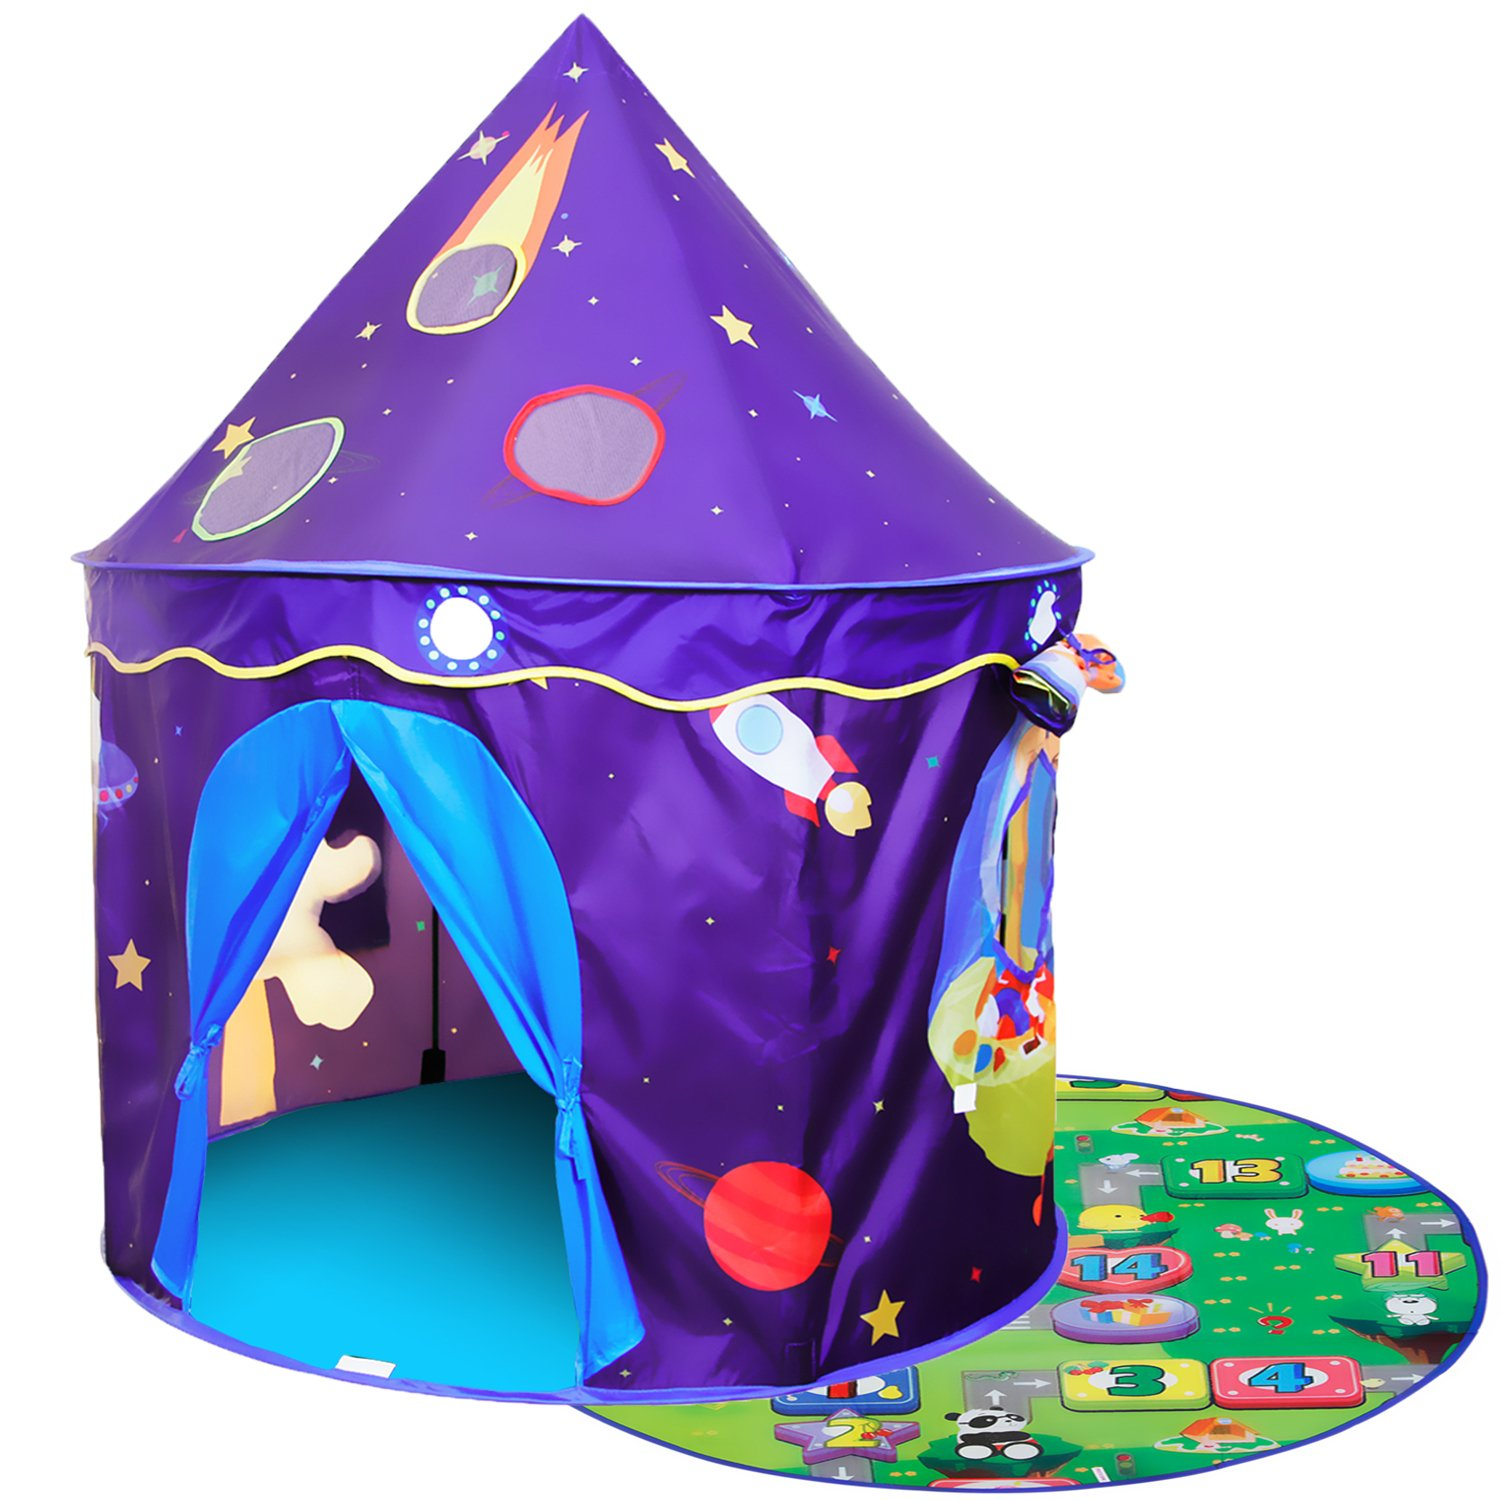 Homfu Play Tent For Kids Castle Playhouse With Space Pattern For Children Perfect Gift for Any Child